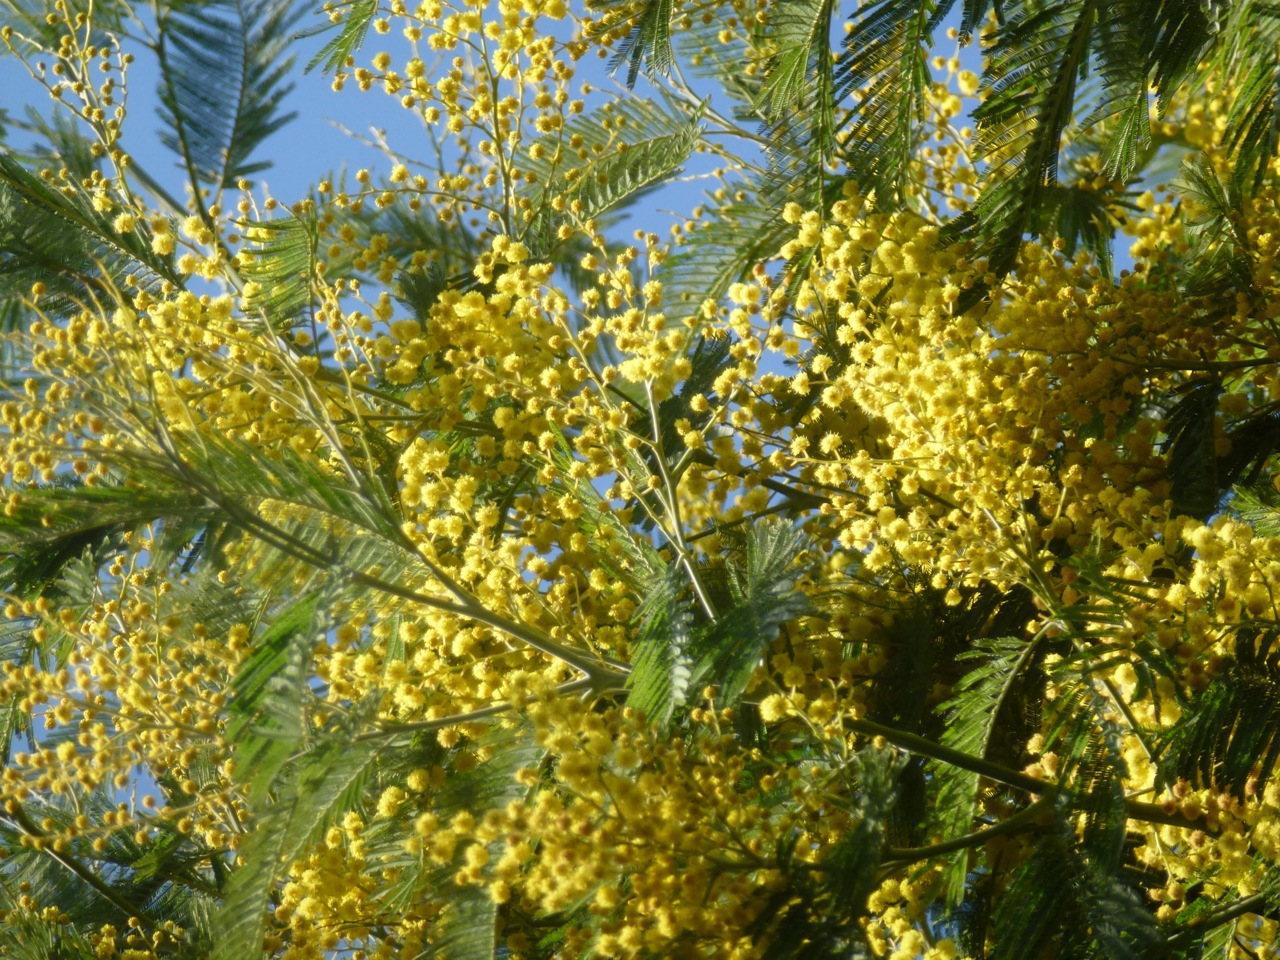 mimosa tree in flower